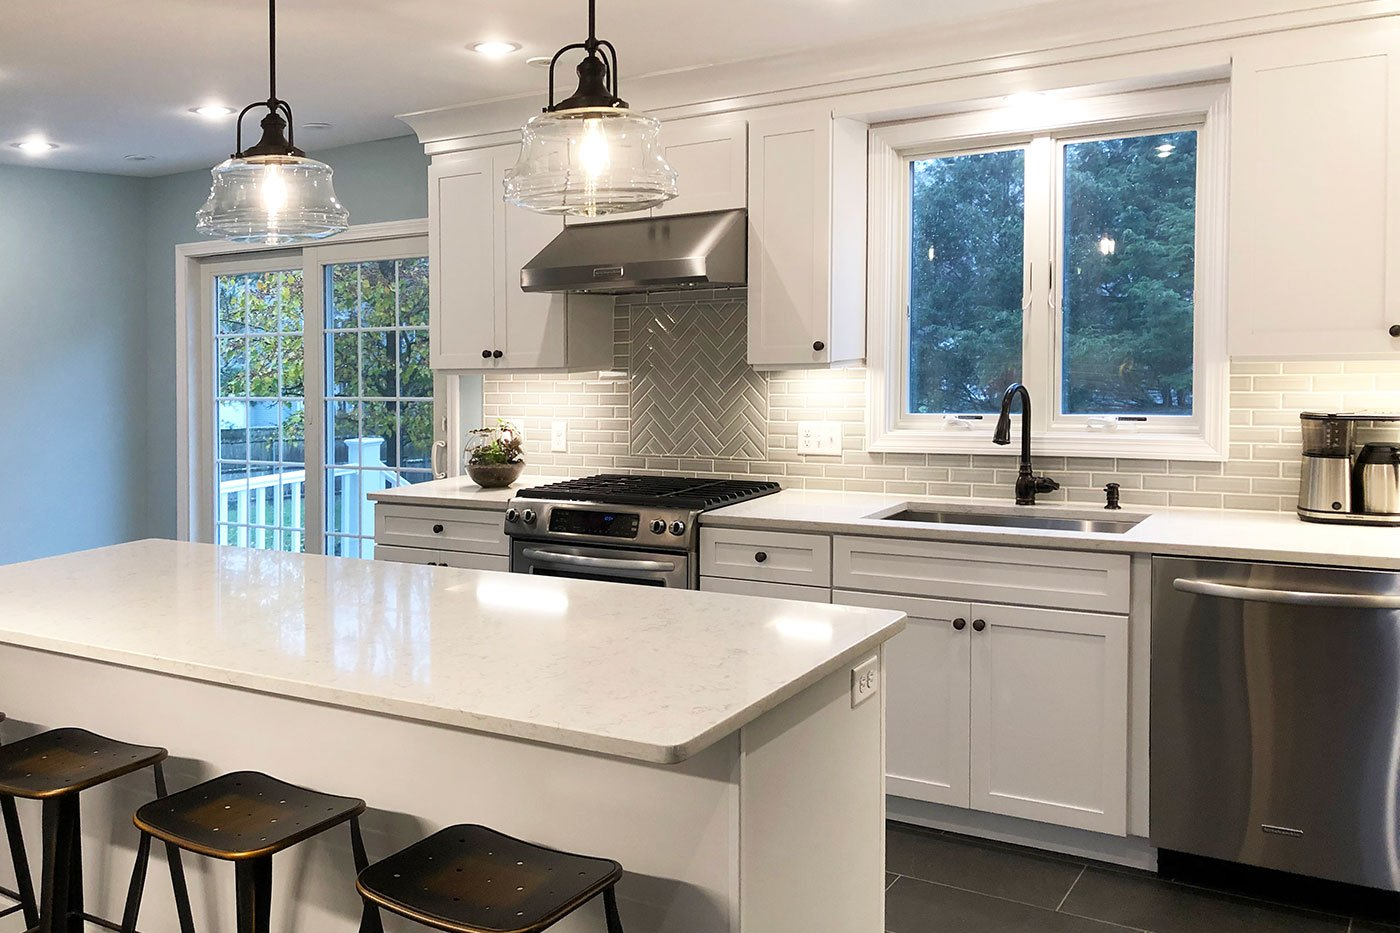 1 Home kitchen renovation, in-house design build firm in RI